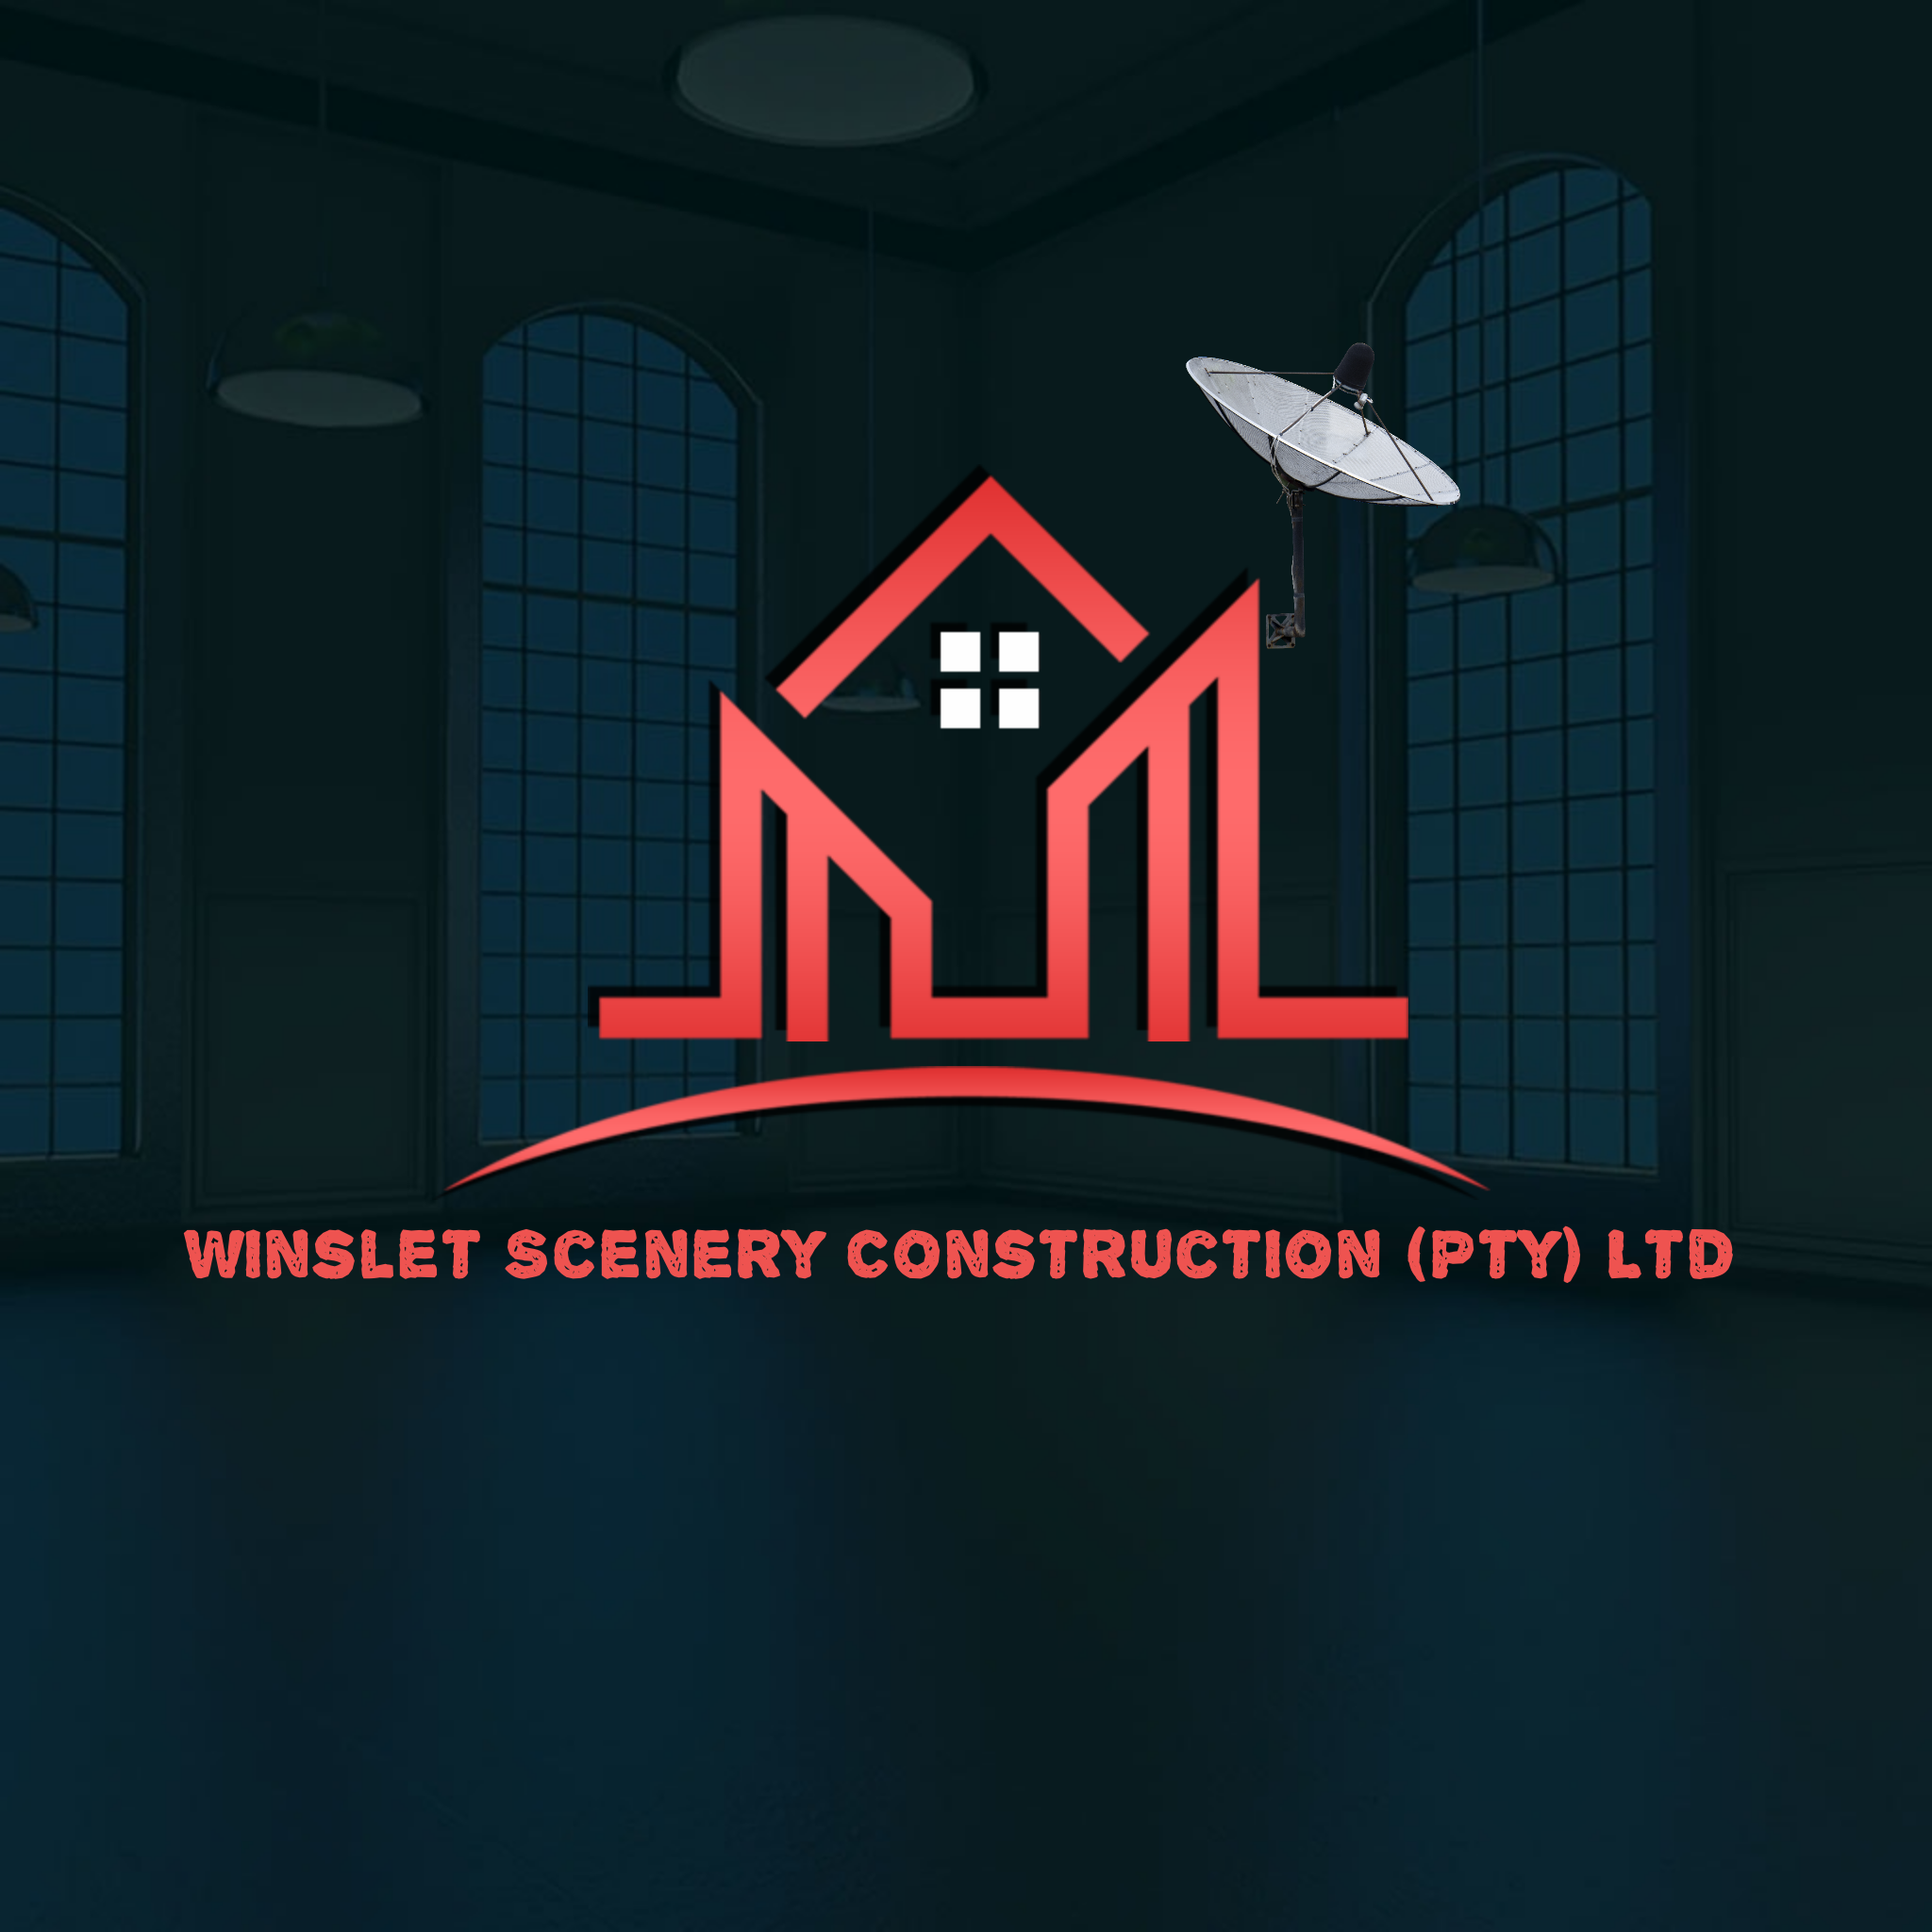 Business Listing for Winslet Scenery Construction